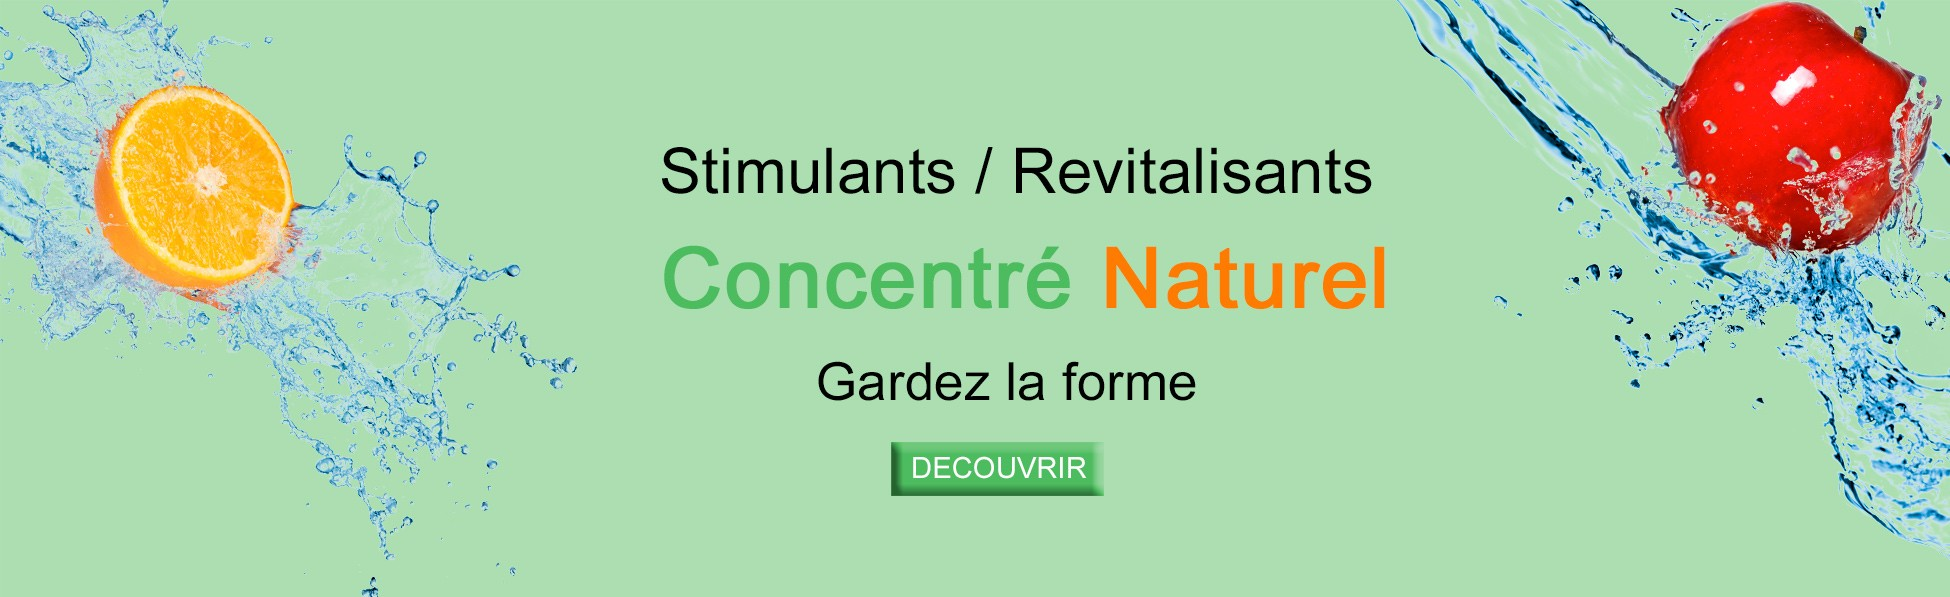 Stimulants et revitalisants